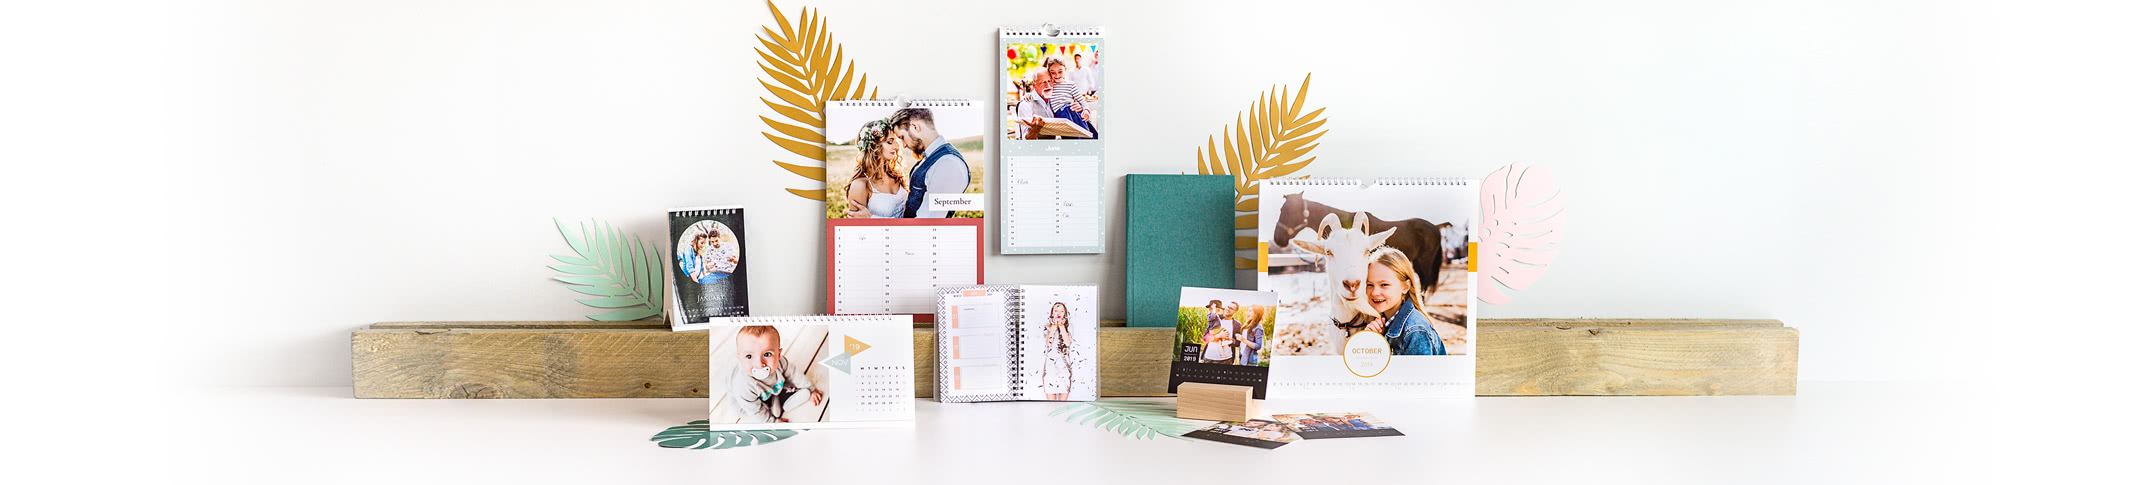 Calendars & Diaries - Create your own Photo Calendar and keep track of the days in a smart way!